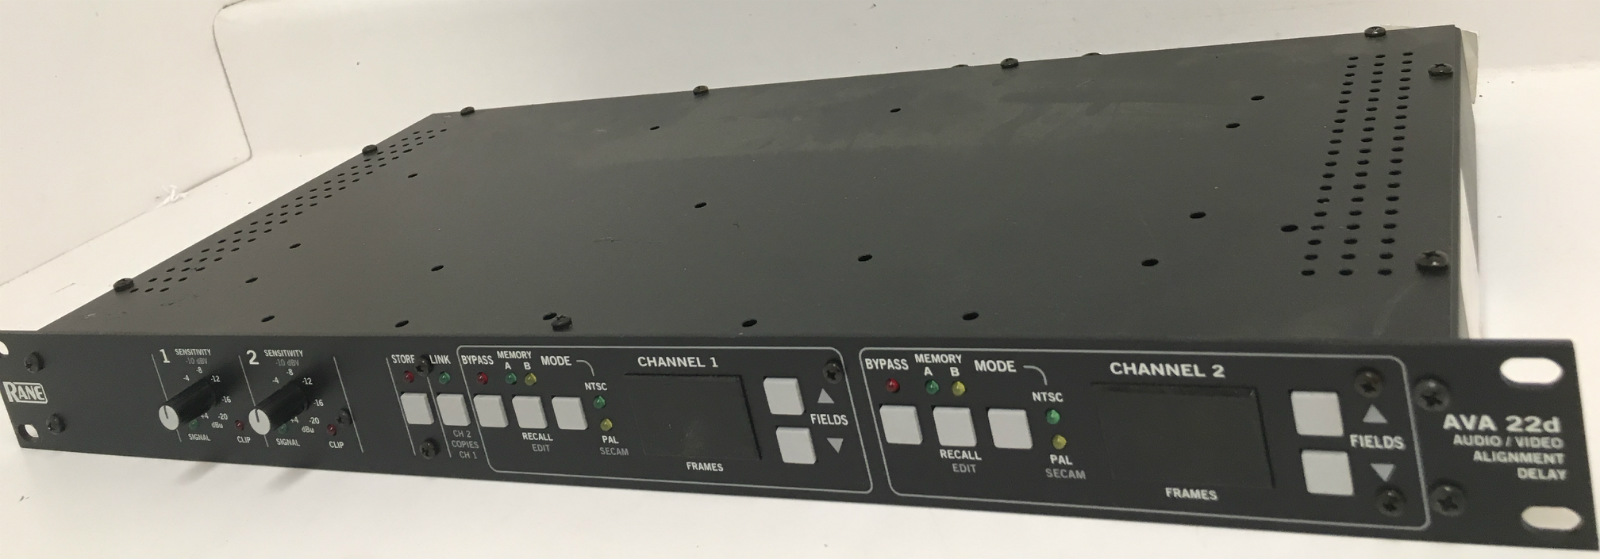 Details about RANE AVA 22d Rack Mountable Audio / Video Alignment Delay